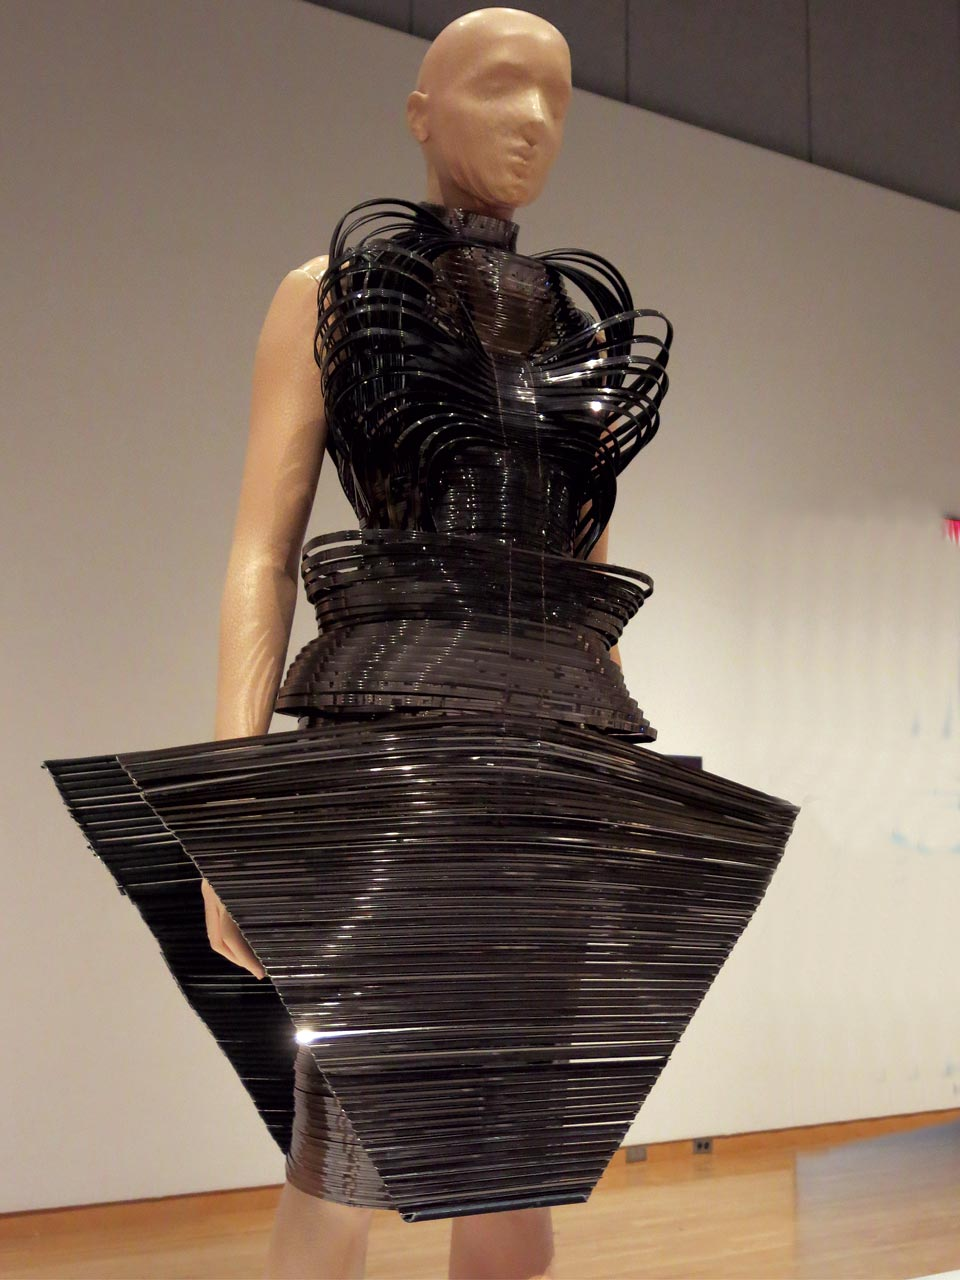 MICRO DRESS from 2012 collection of metallic coated stripes, tulle and cotton.  Photograph by Patrick R. Benesh-Liu.